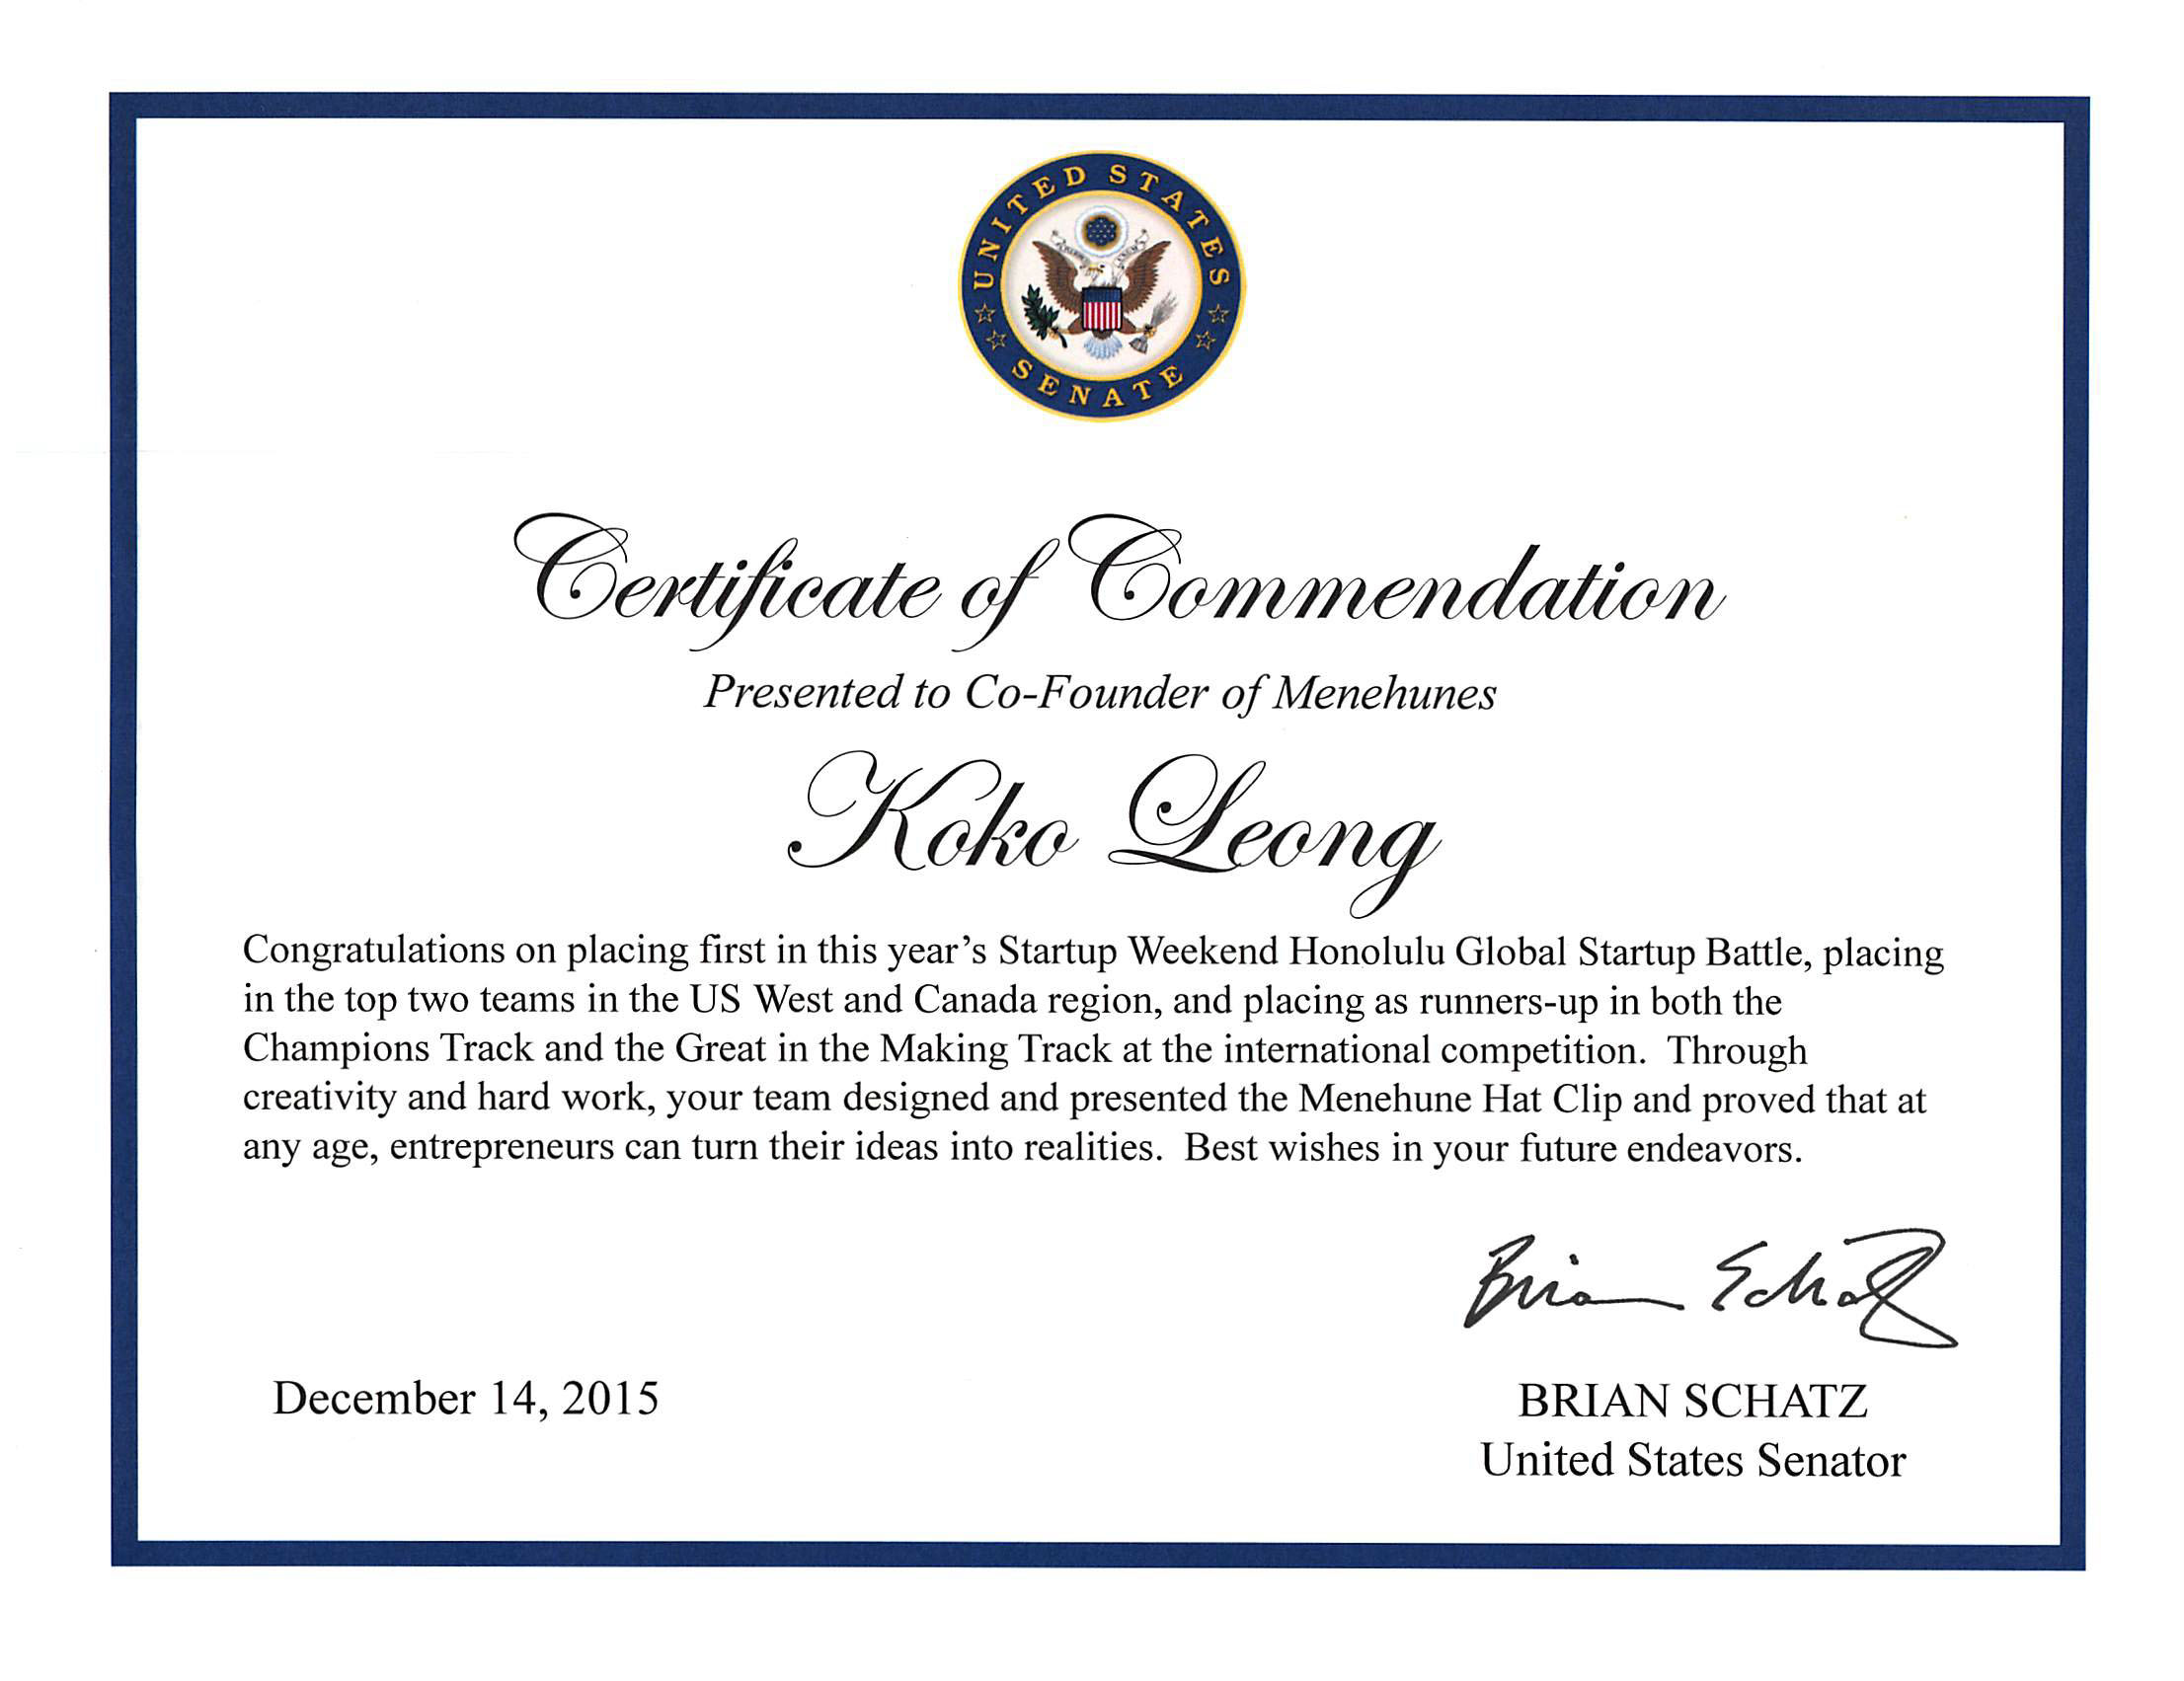 Commendation certificate template 28 images air award for Certificate of commendation usmc template